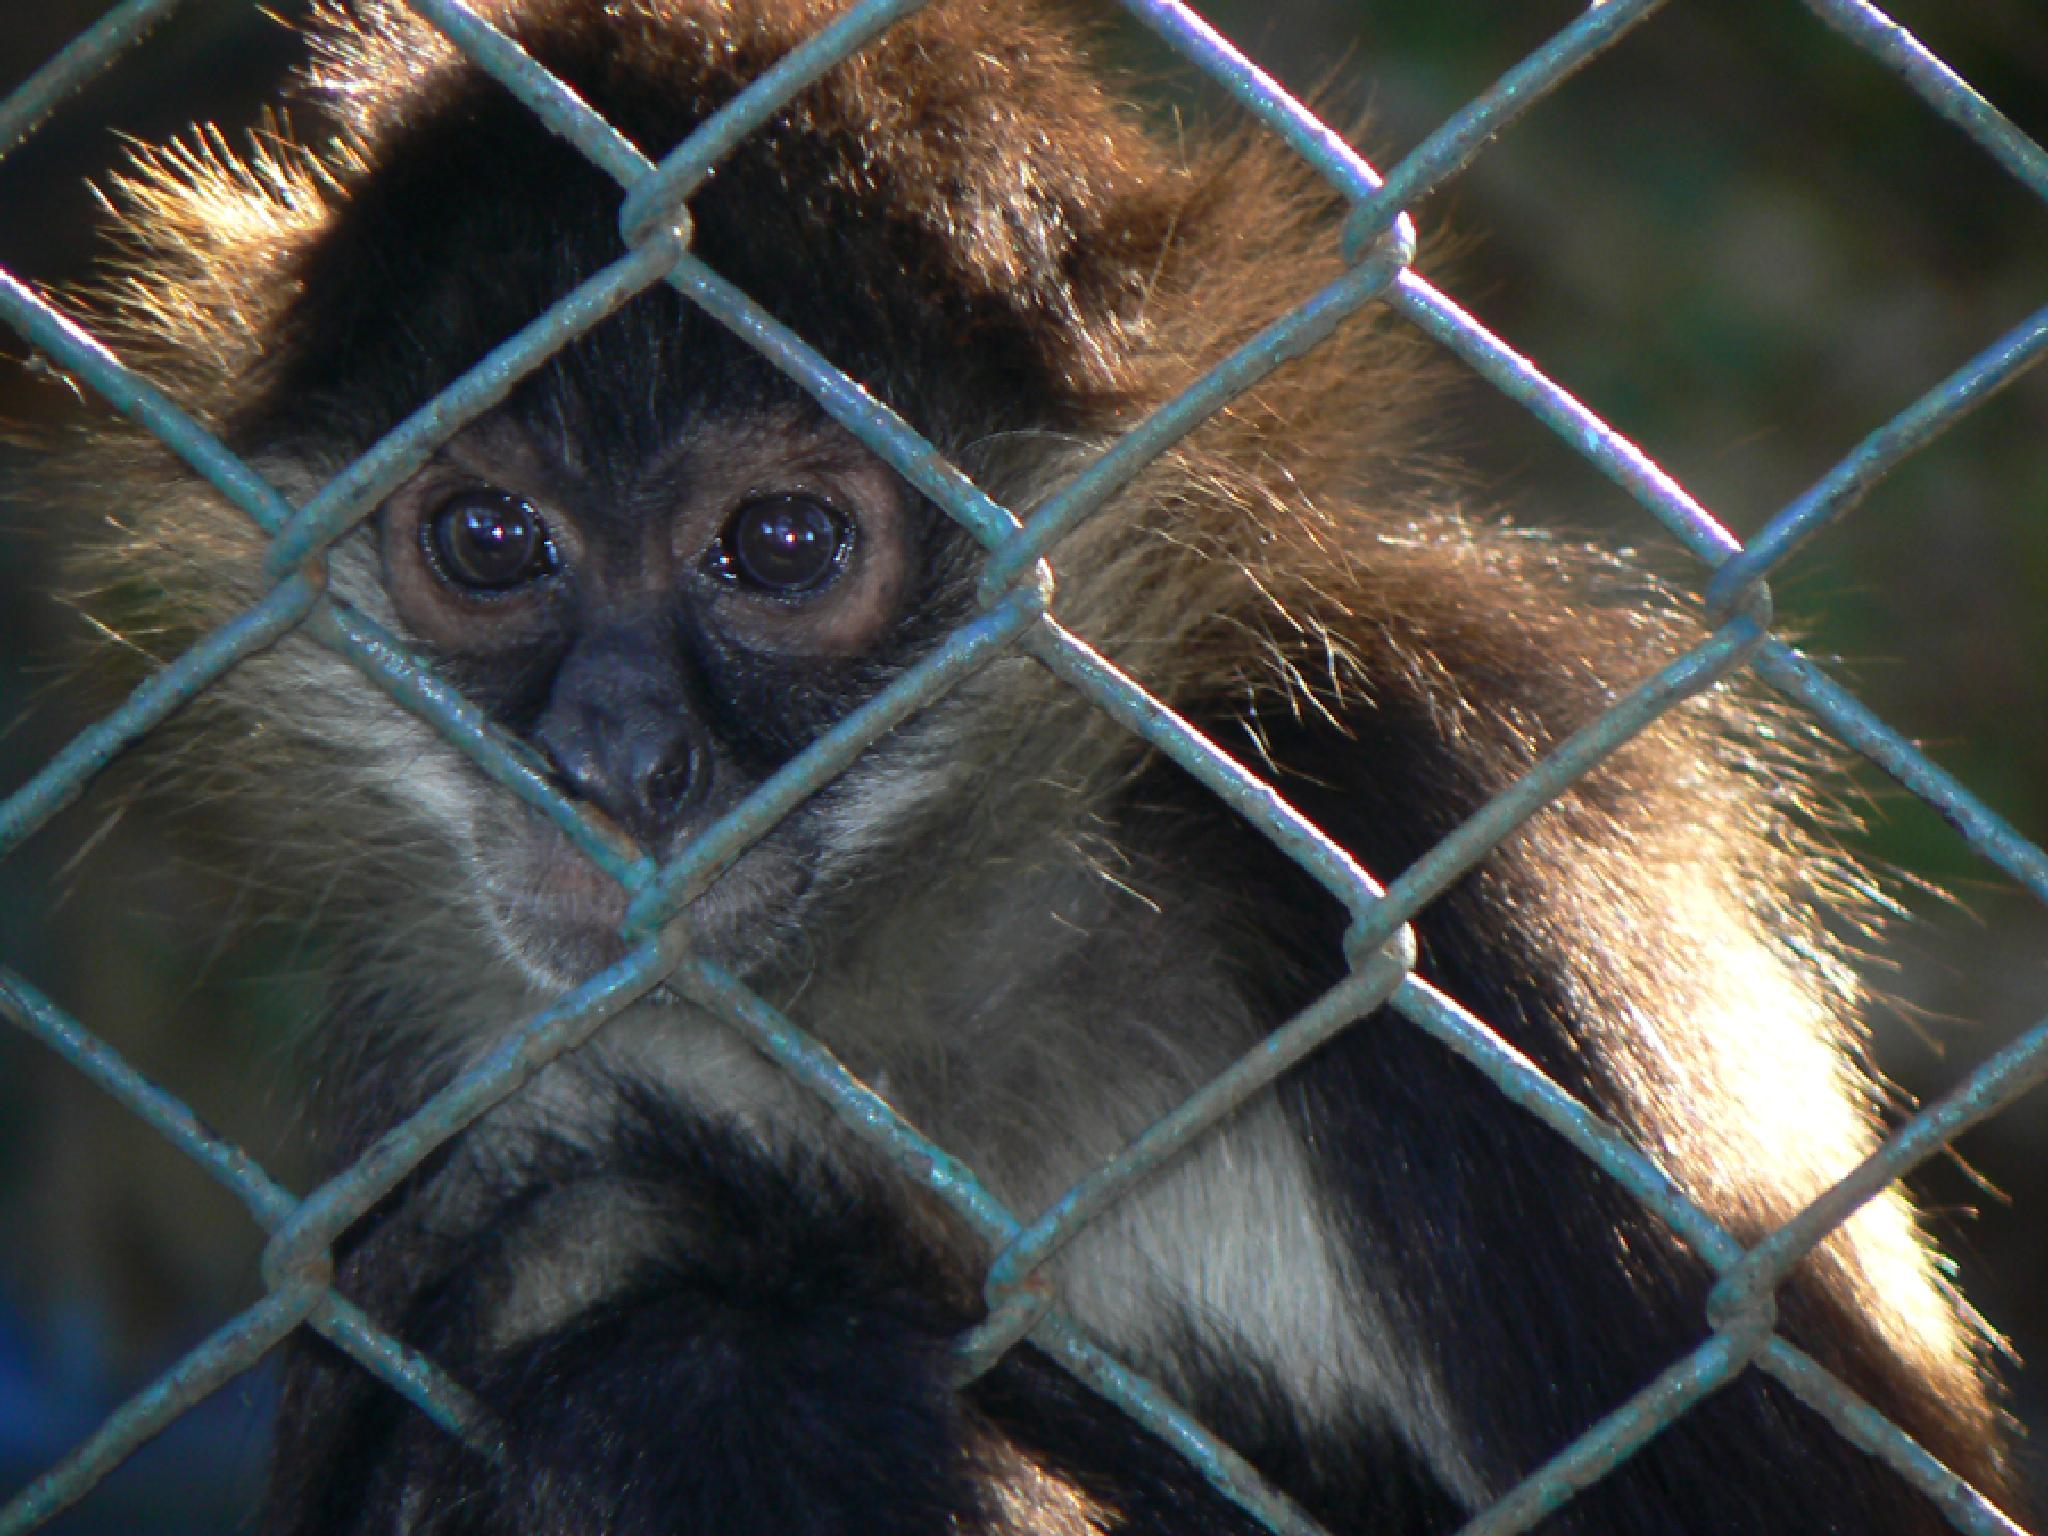 Monkey in a cage by jackselyn